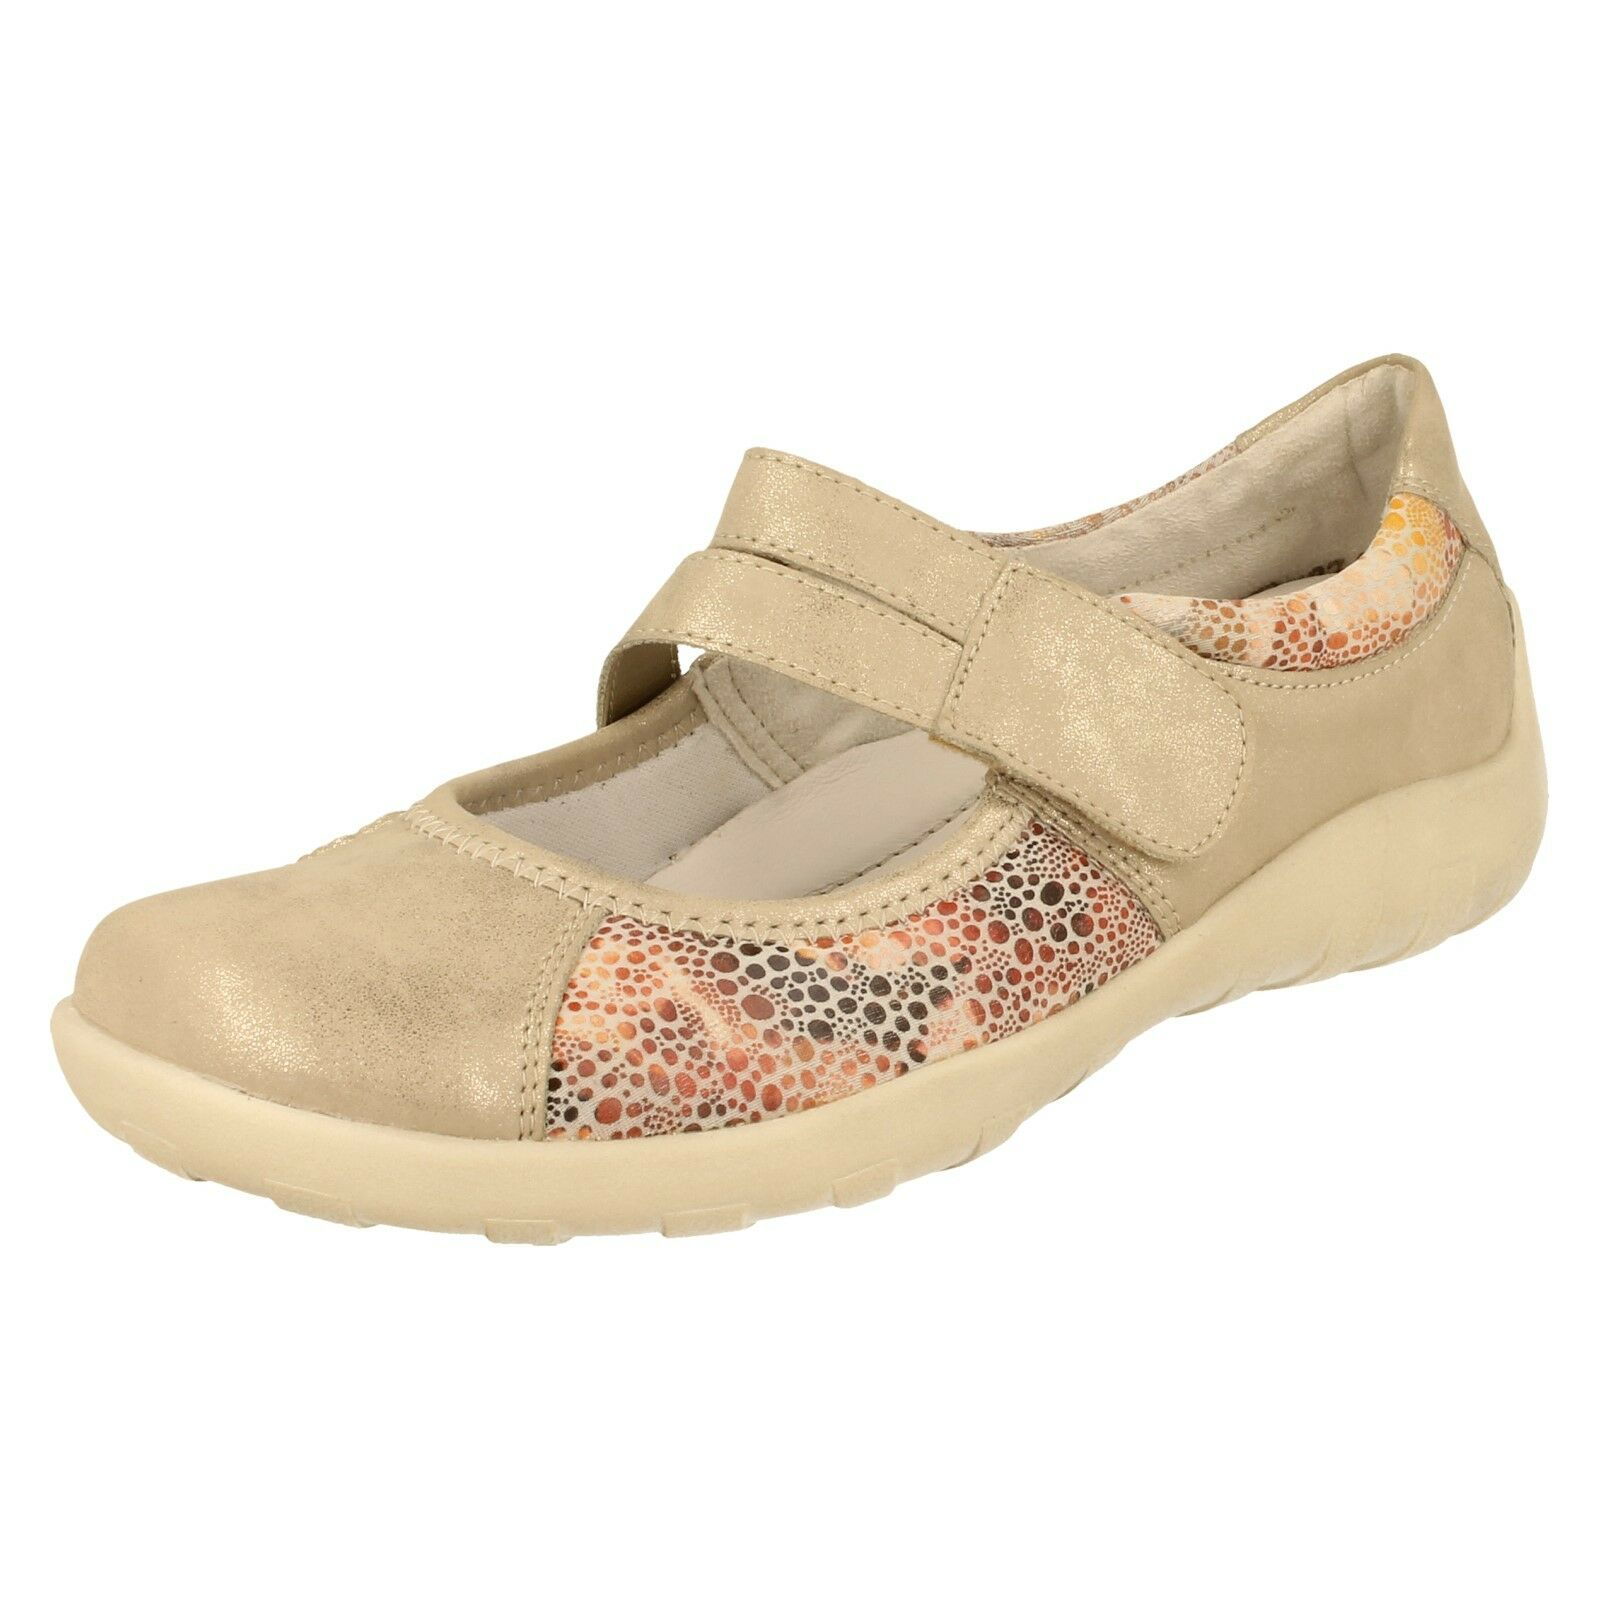 Ladies Remonte Casual Mary Jane shoes - R3510